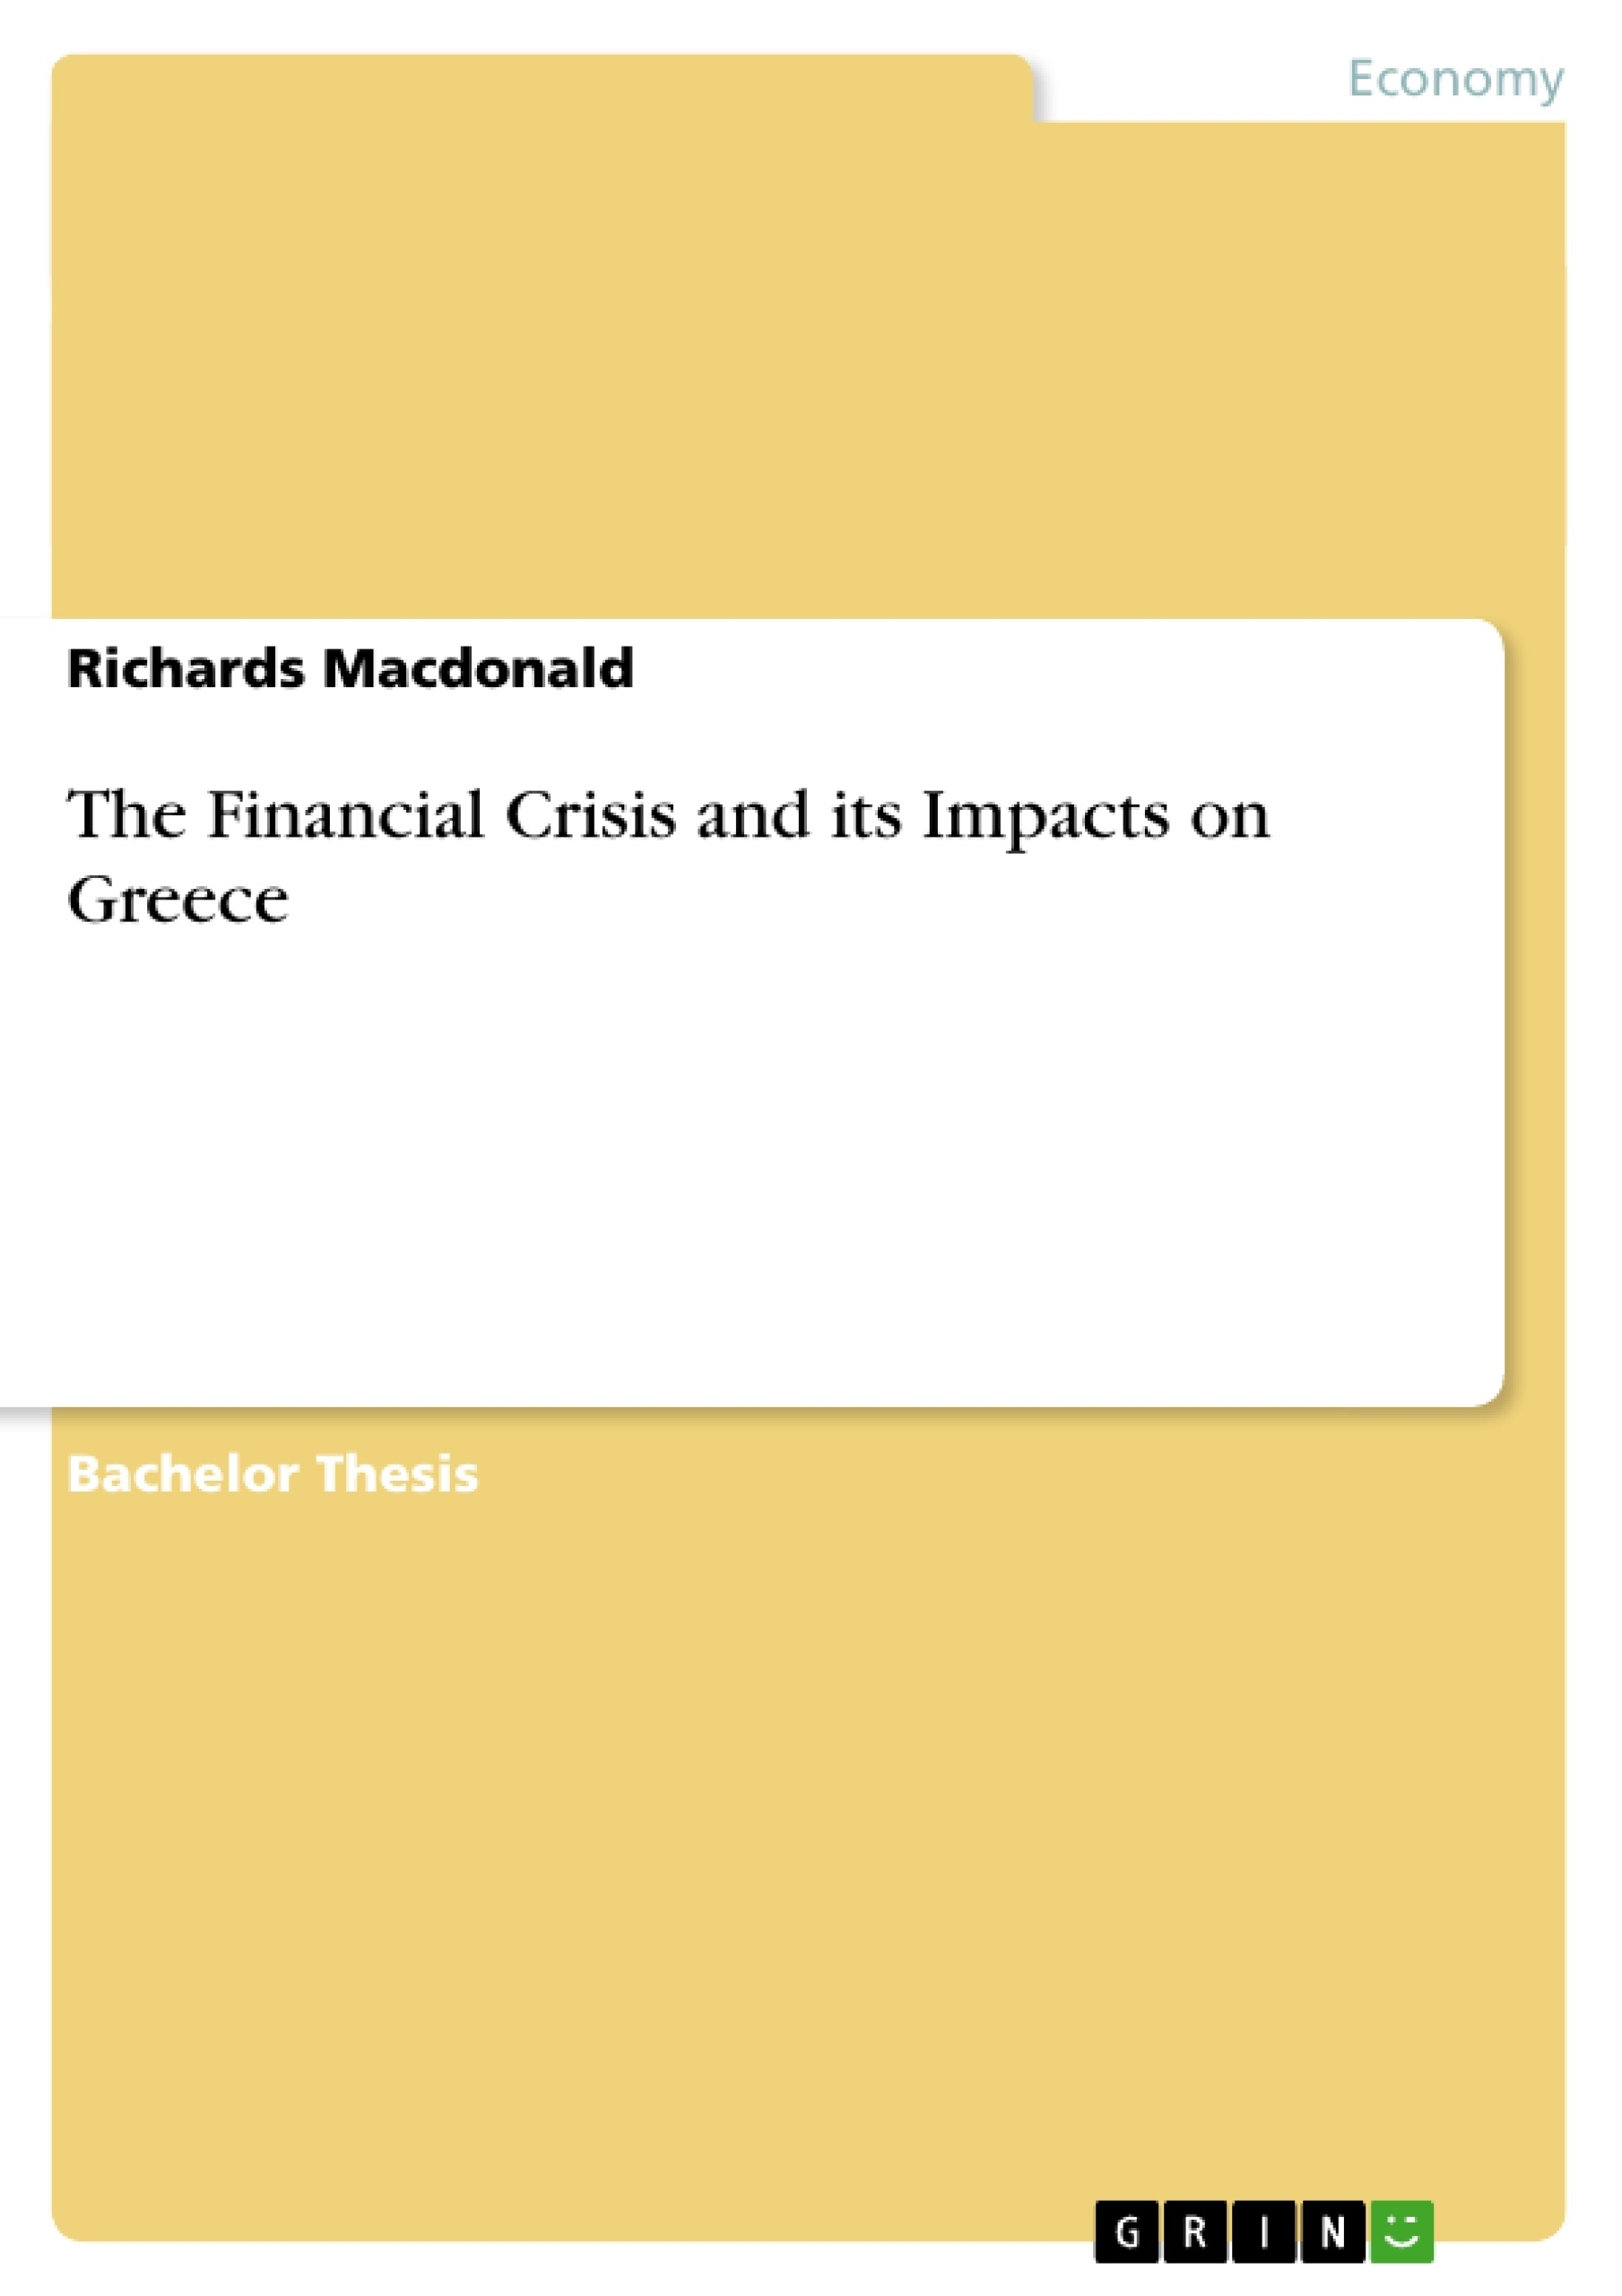 Title: The Financial Crisis and its Impacts on Greece